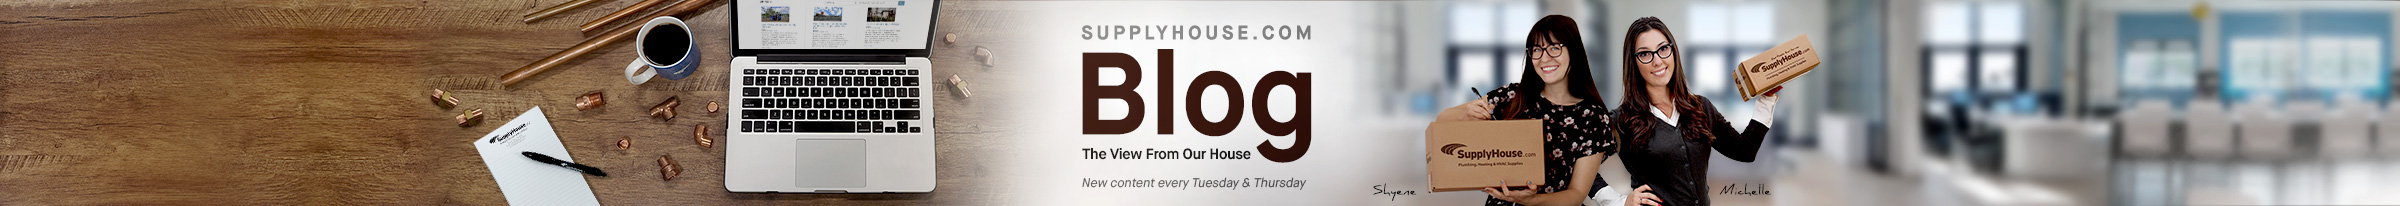 SupplyHouse Blog Banner 1